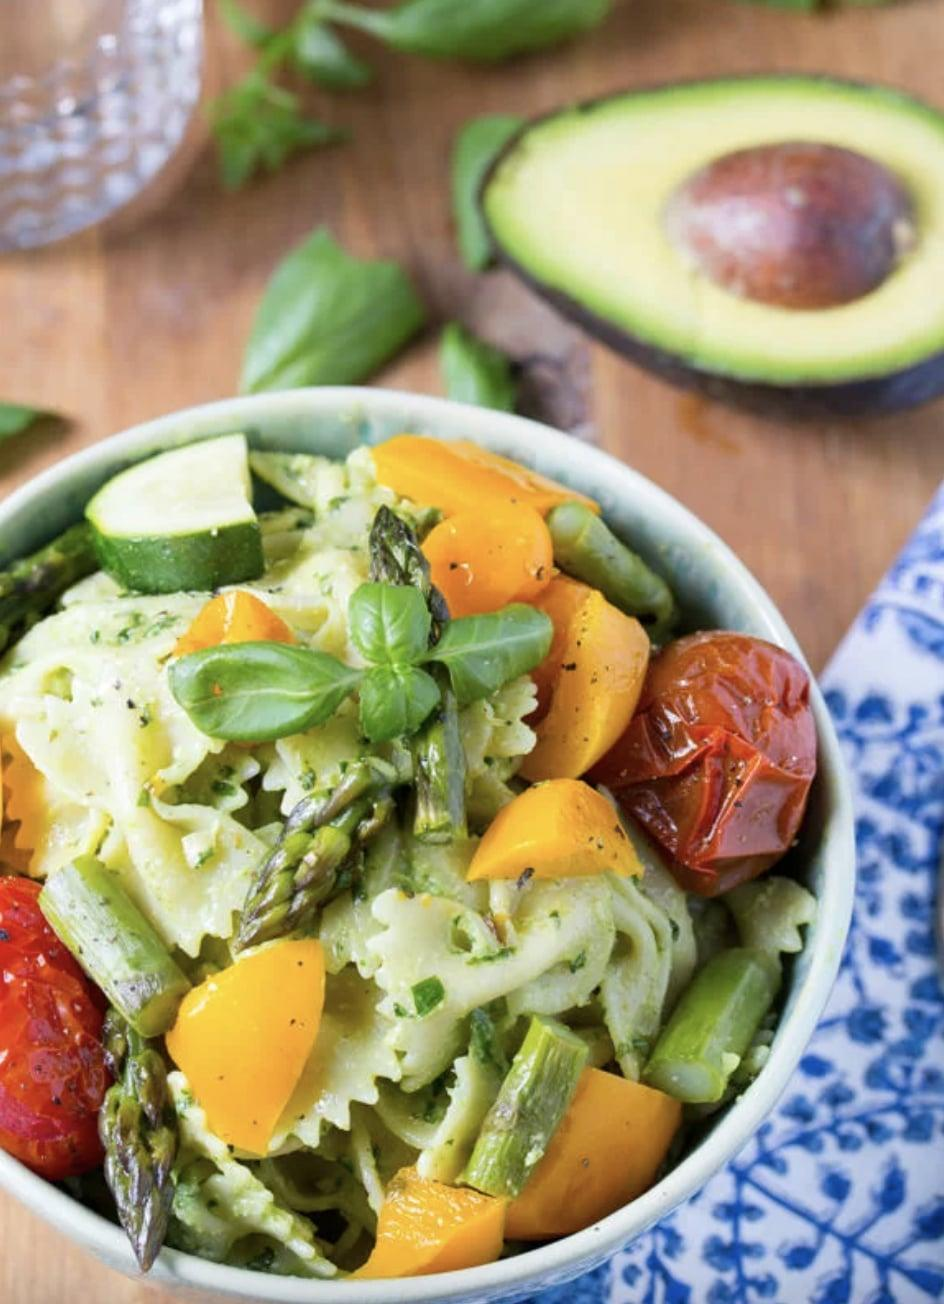 """<p>Avocado pesto is the new and improved pasta sauce, and wow, is it good. This salad includes the classic pesto favorites like basil, garlic, and parmesan cheese - just with a lighter avocado twist. Pair it with your favorite summer veggies to make it complete.</p> <p><strong>Get the recipe:</strong> <a href=""""http://sweetpeasandsaffron.com/2014/06/avocado-pesto-pasta-salad-with-roasted-summer-vegetables.html"""" class=""""link rapid-noclick-resp"""" rel=""""nofollow noopener"""" target=""""_blank"""" data-ylk=""""slk:avocado pesto pasta salad"""">avocado pesto pasta salad</a></p>"""